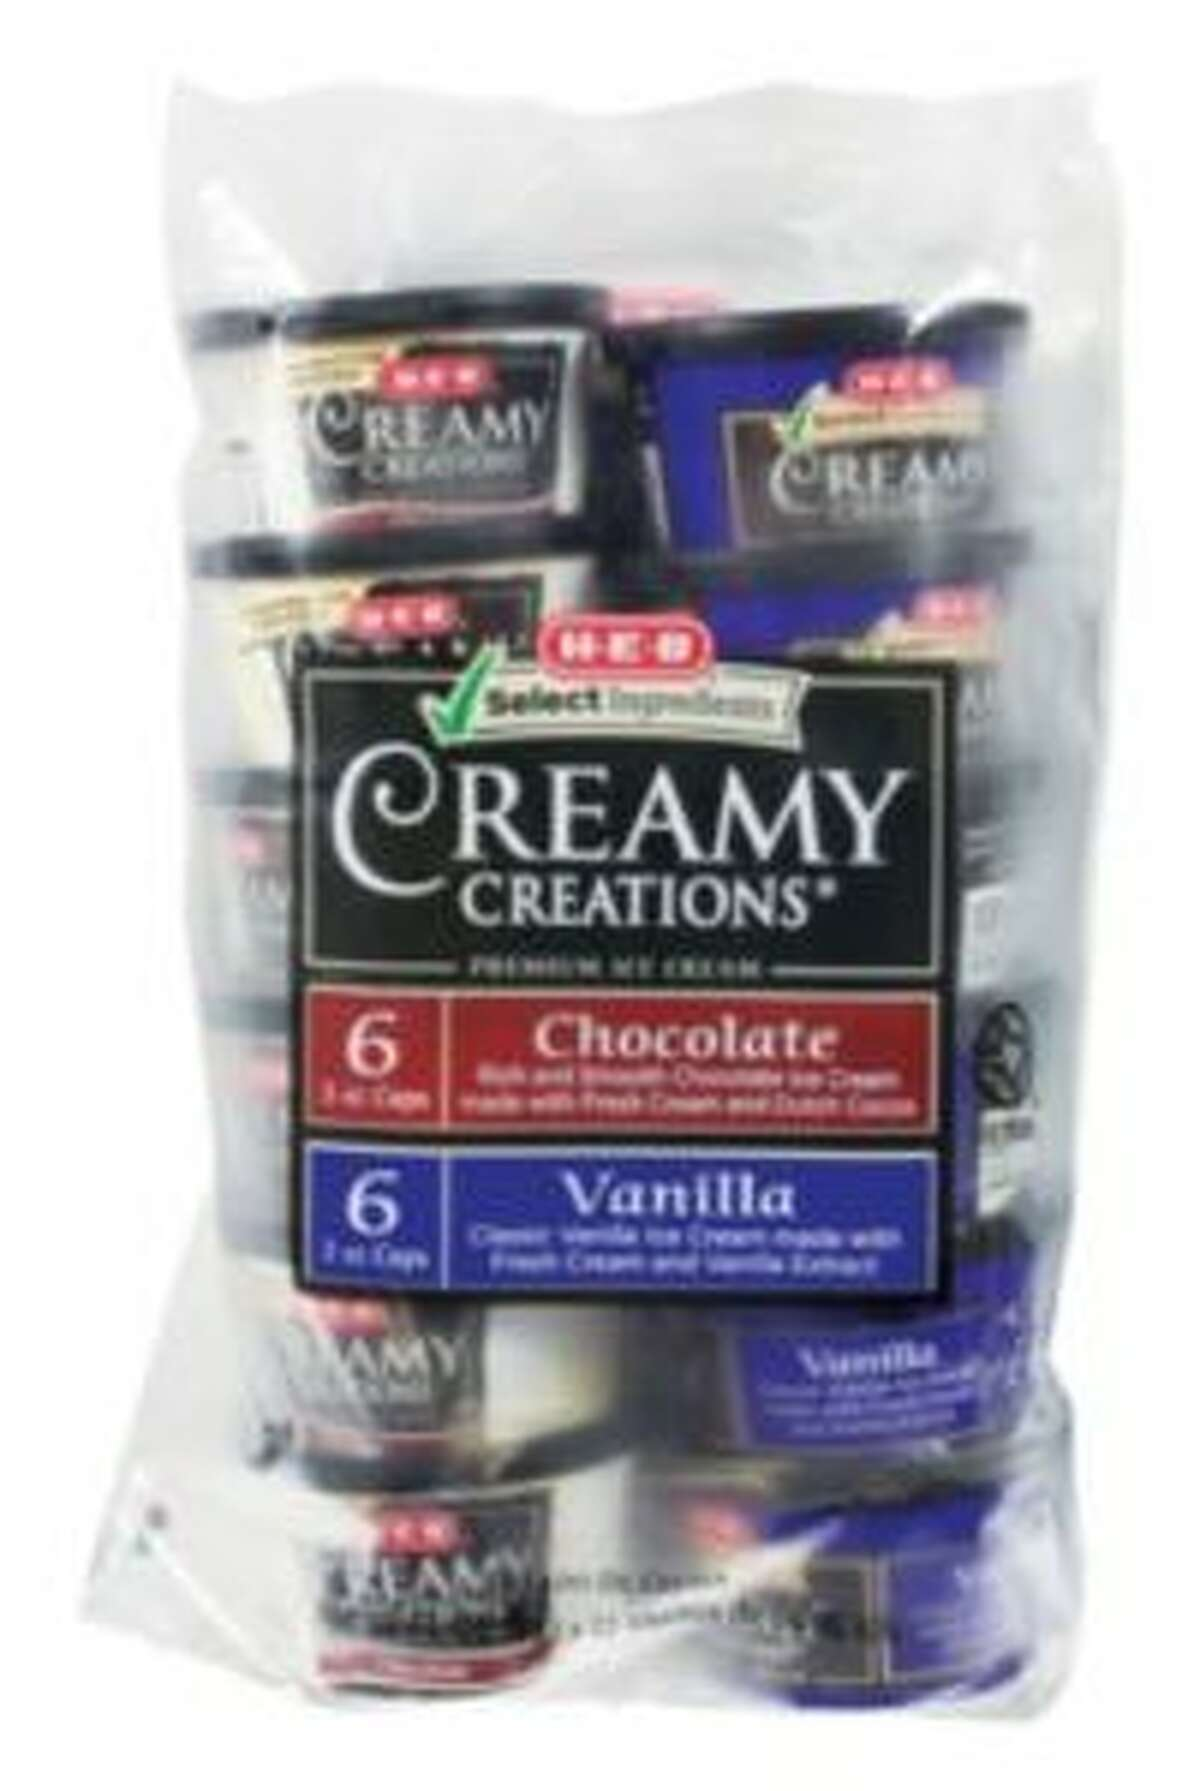 H-E-B has issued a recall for two types of Creamy Creations products: ice cream and sherbet variety packs.